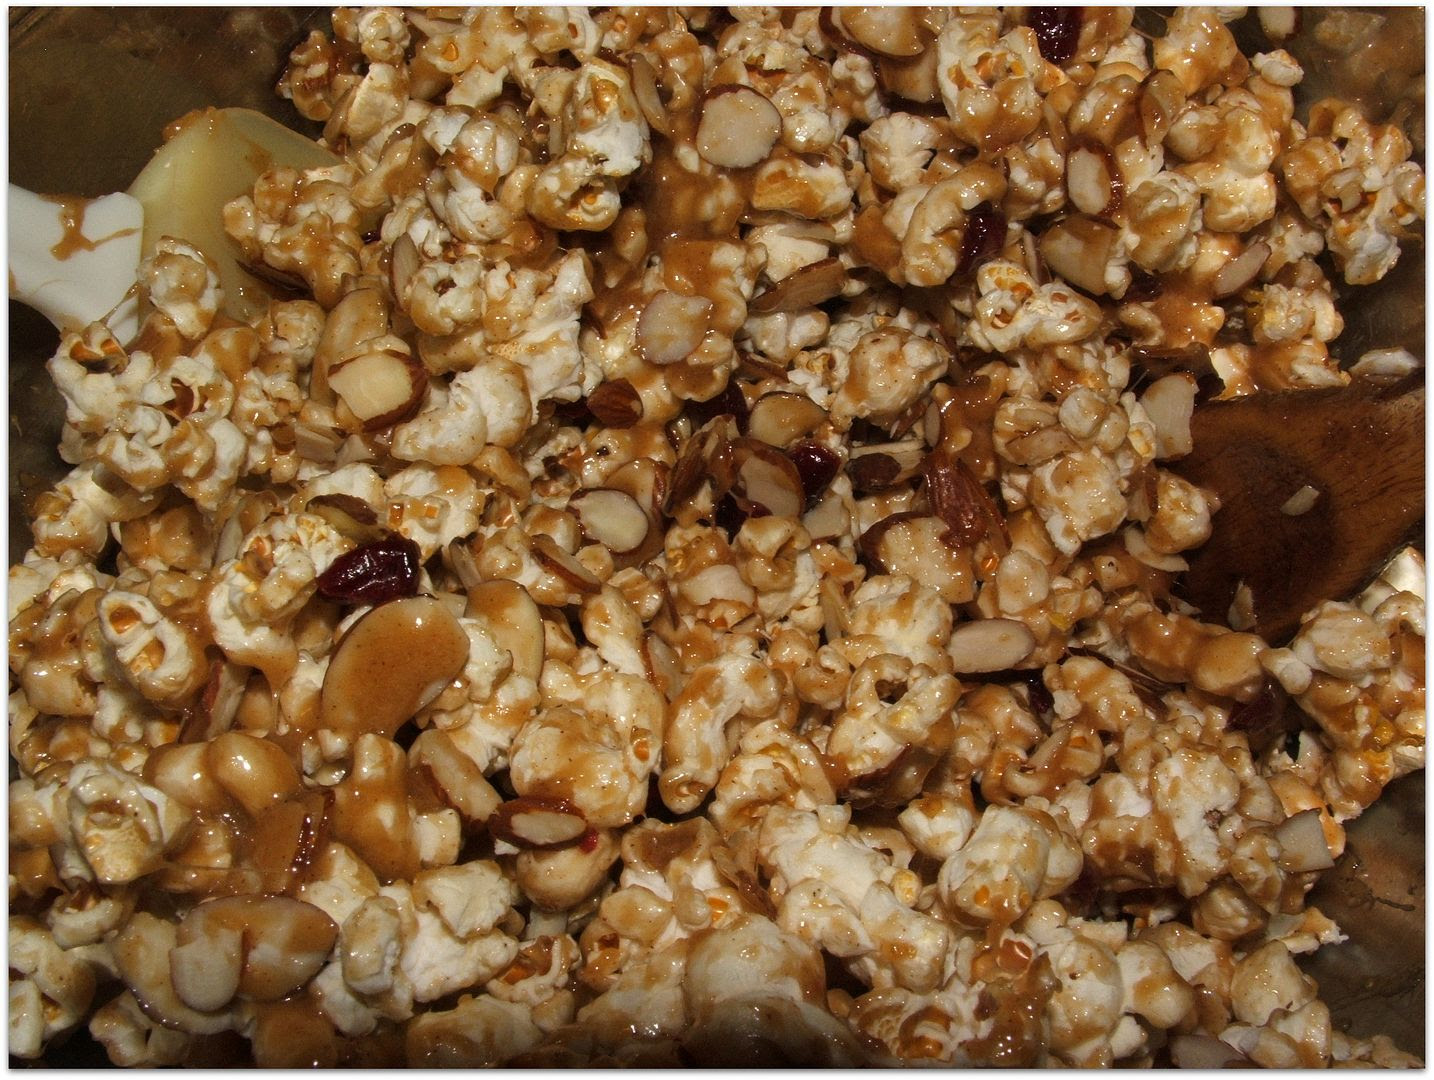 caramel popcorn by Angie Ouellette-Tower for godsgrowinggarden.com photo 006_zpsdab0e334.jpg